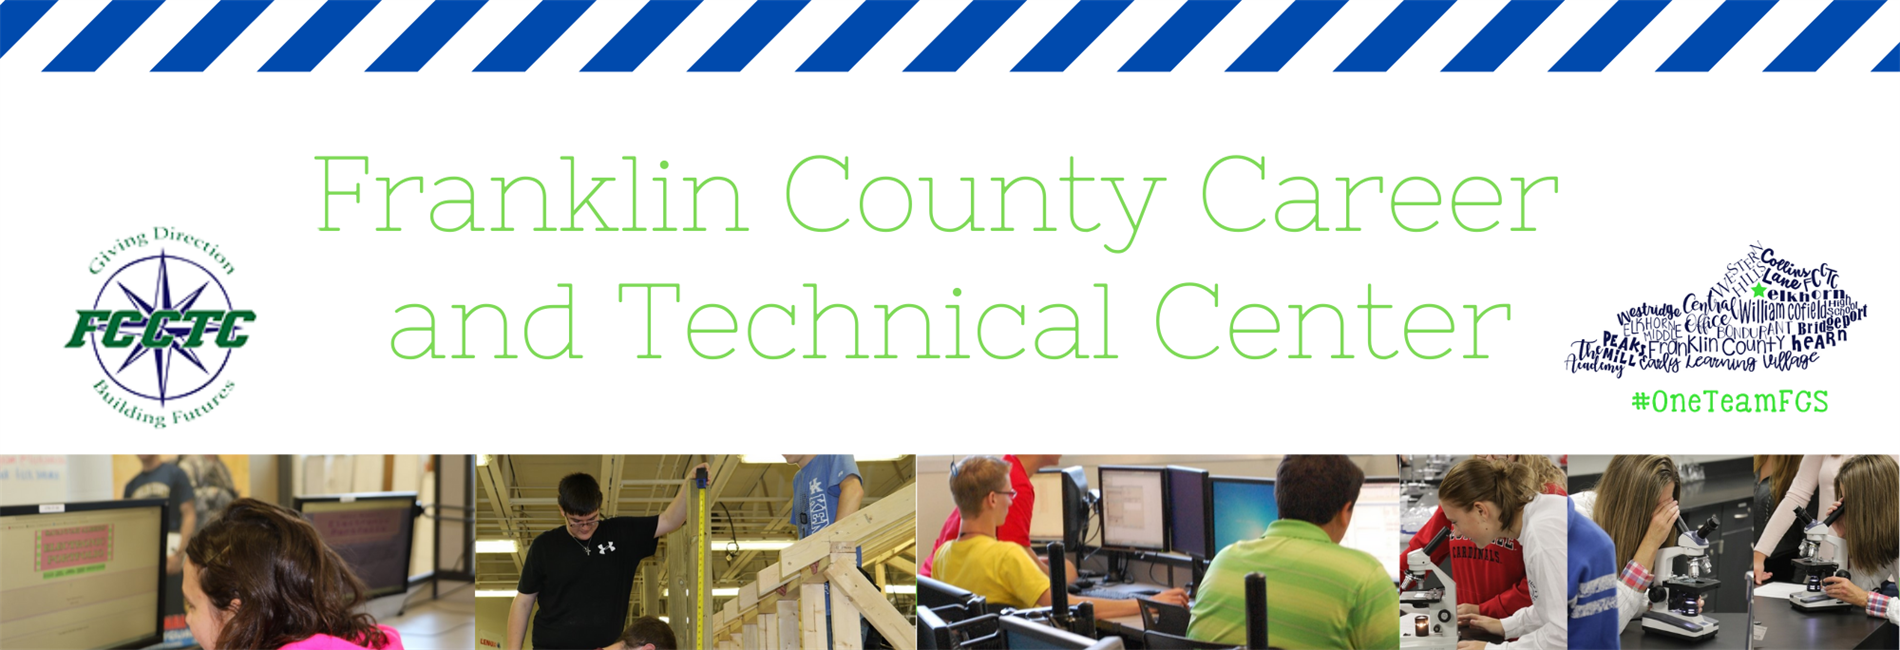 FCTC Franklin County Career and Technical Center